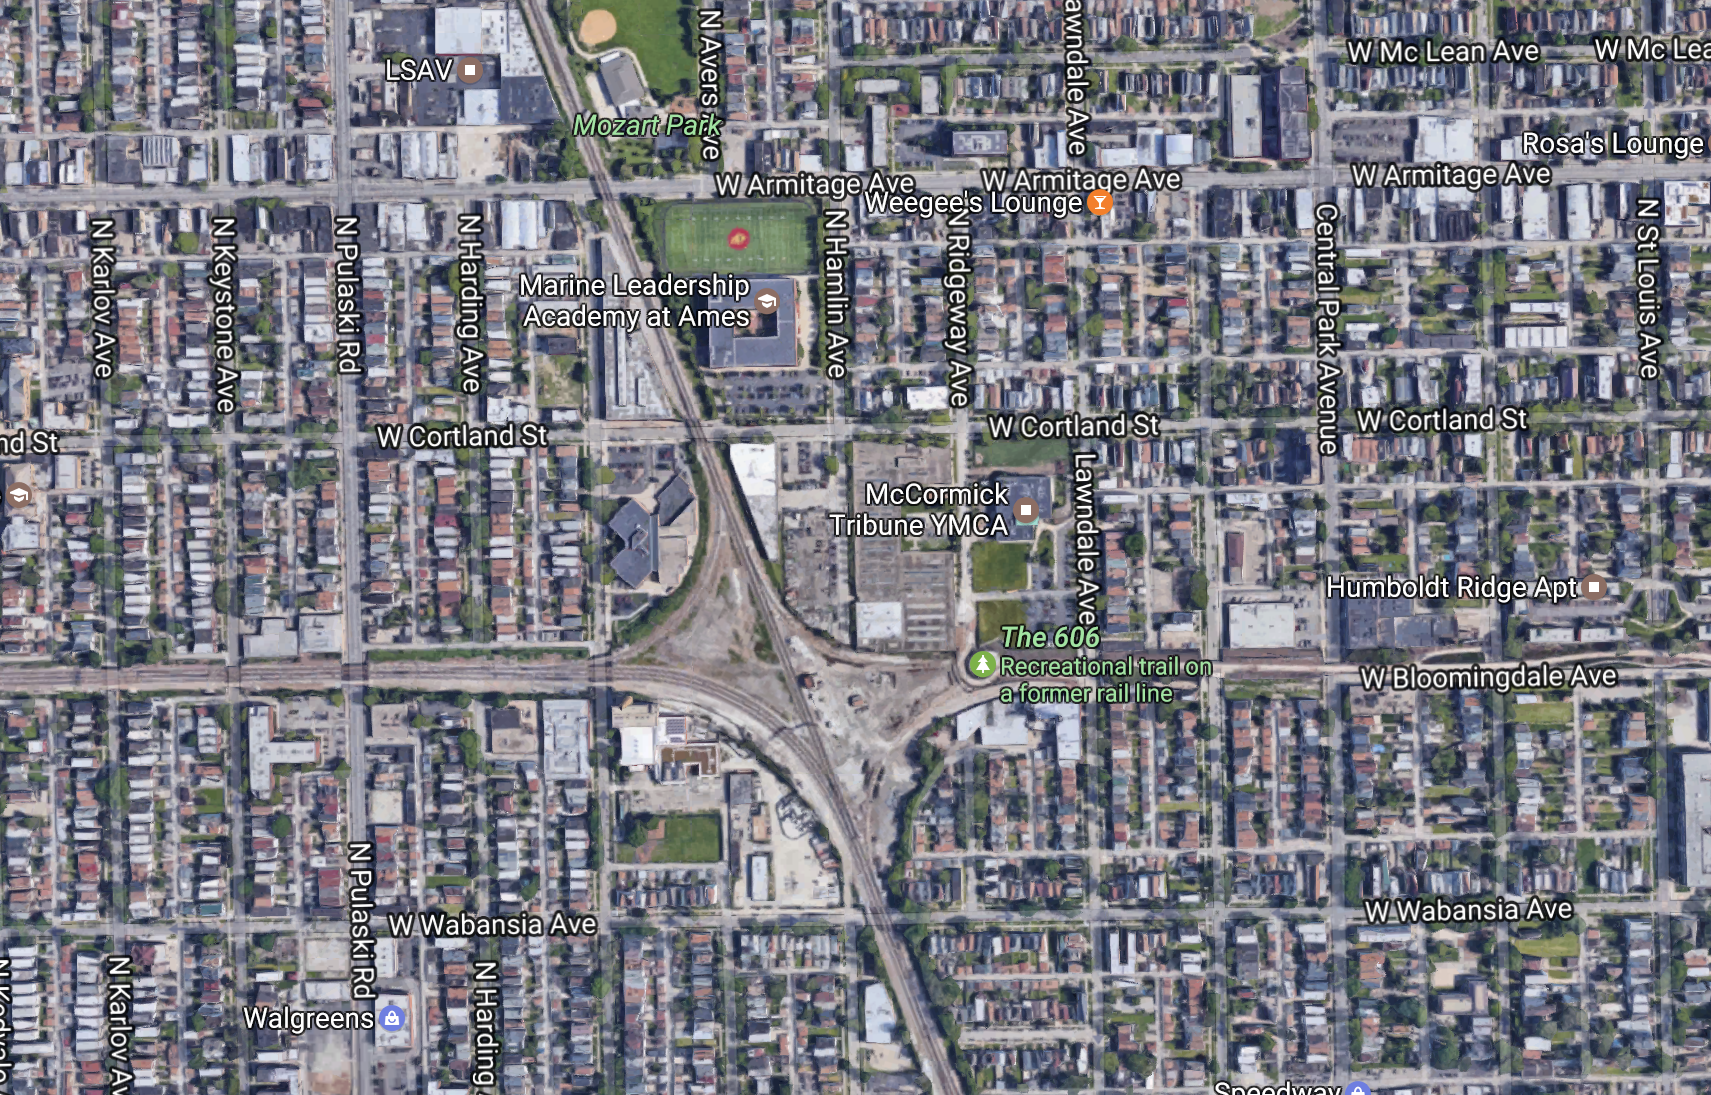 Check Out Stevens Trippy Aerial Footage of Tracks and Neighborhoods